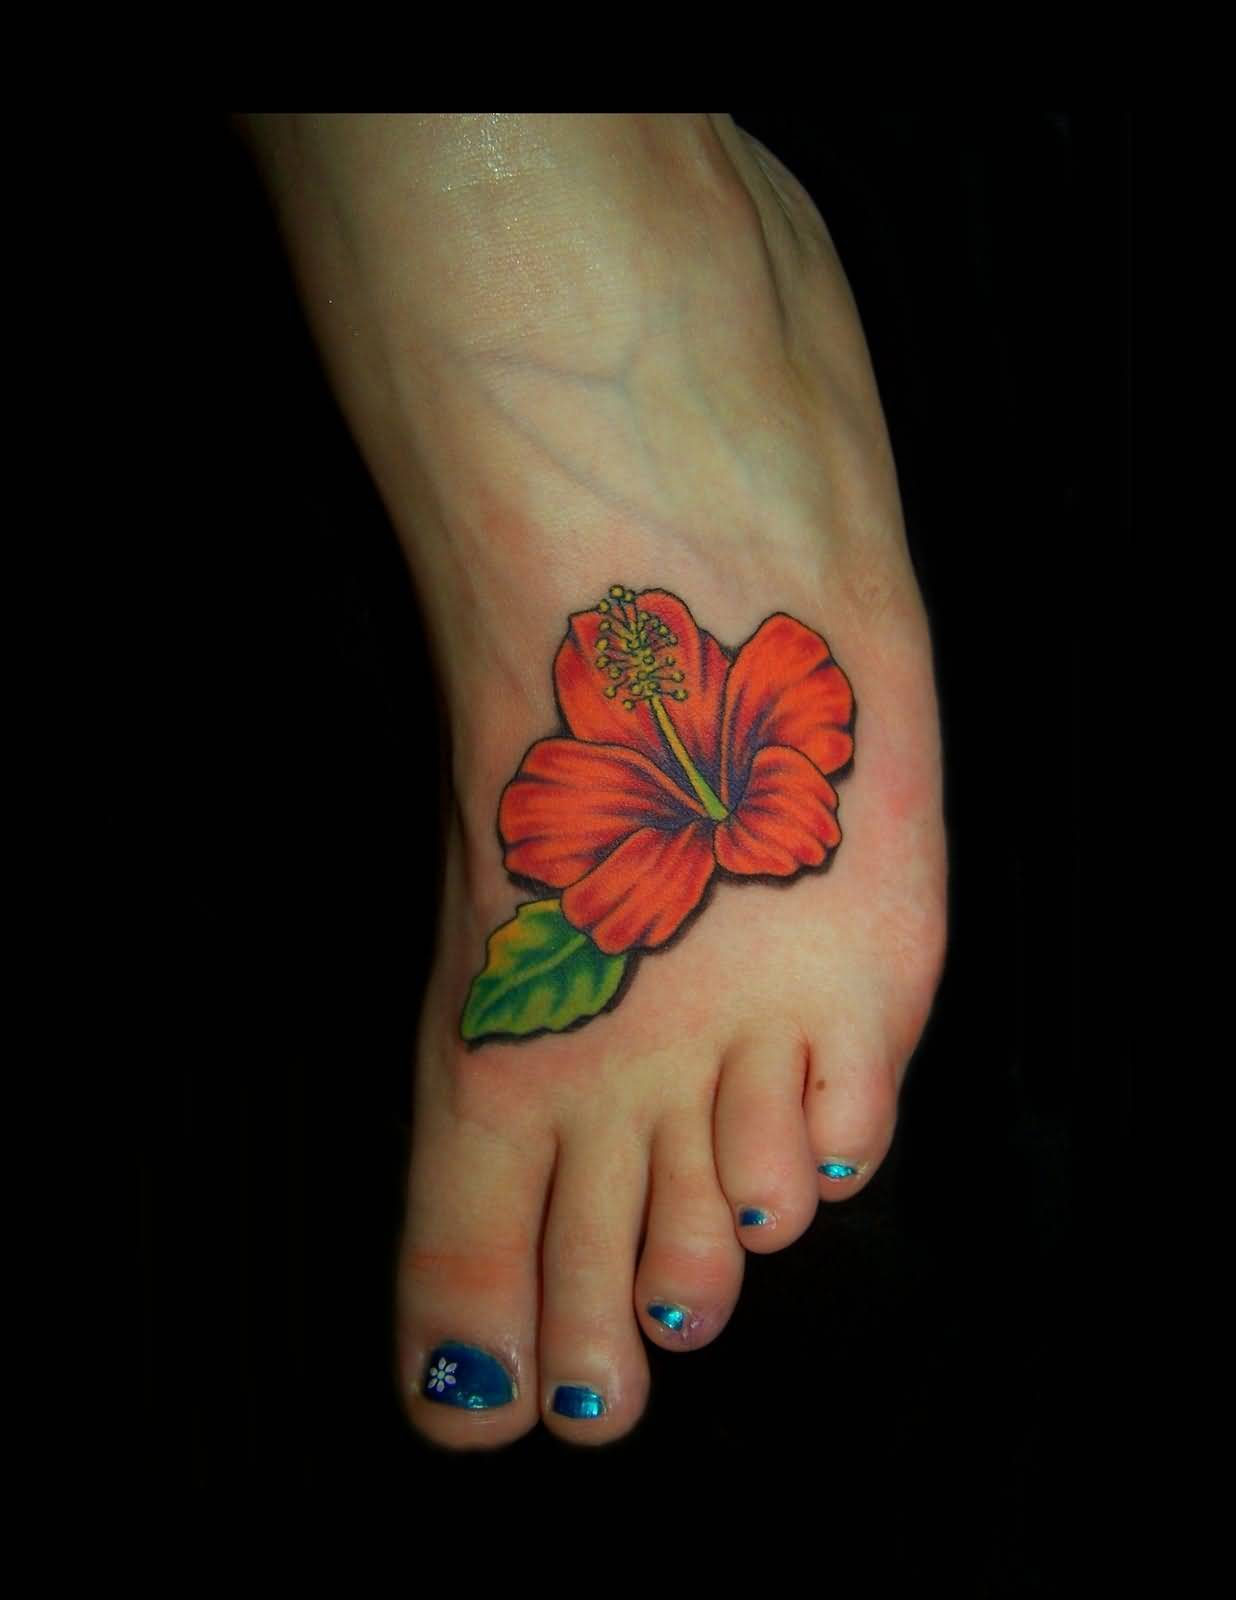 Hibiscus flower tattoo ideas and hibiscus flower tattoo designs page 3 awesome simple orange hibiscus flower tattoo make on foot izmirmasajfo